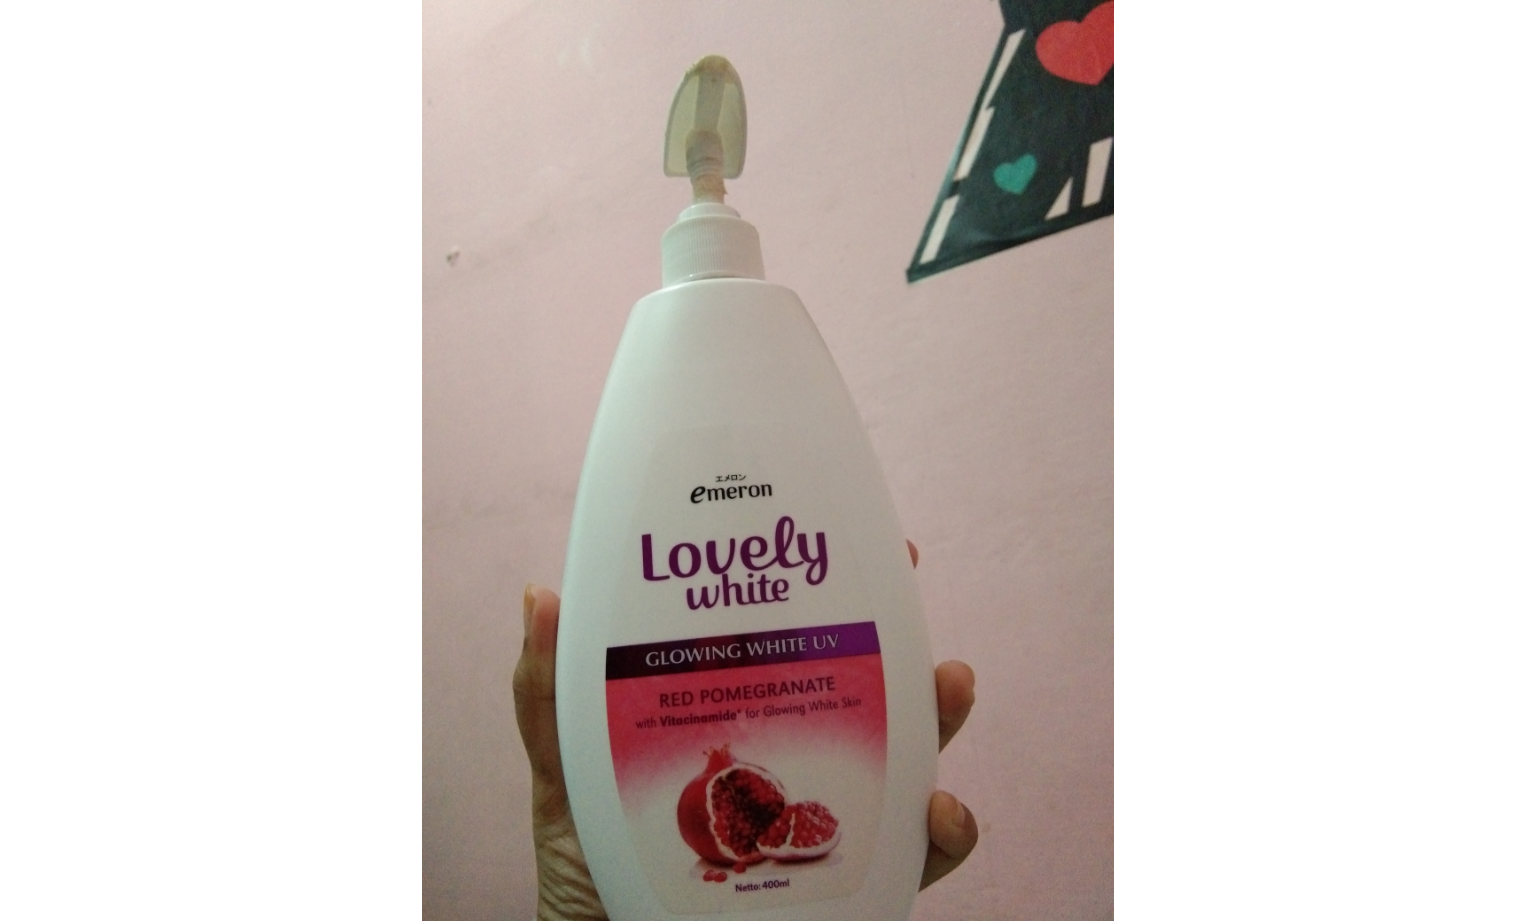 Emeron Lovely Glowing White Body Lotion